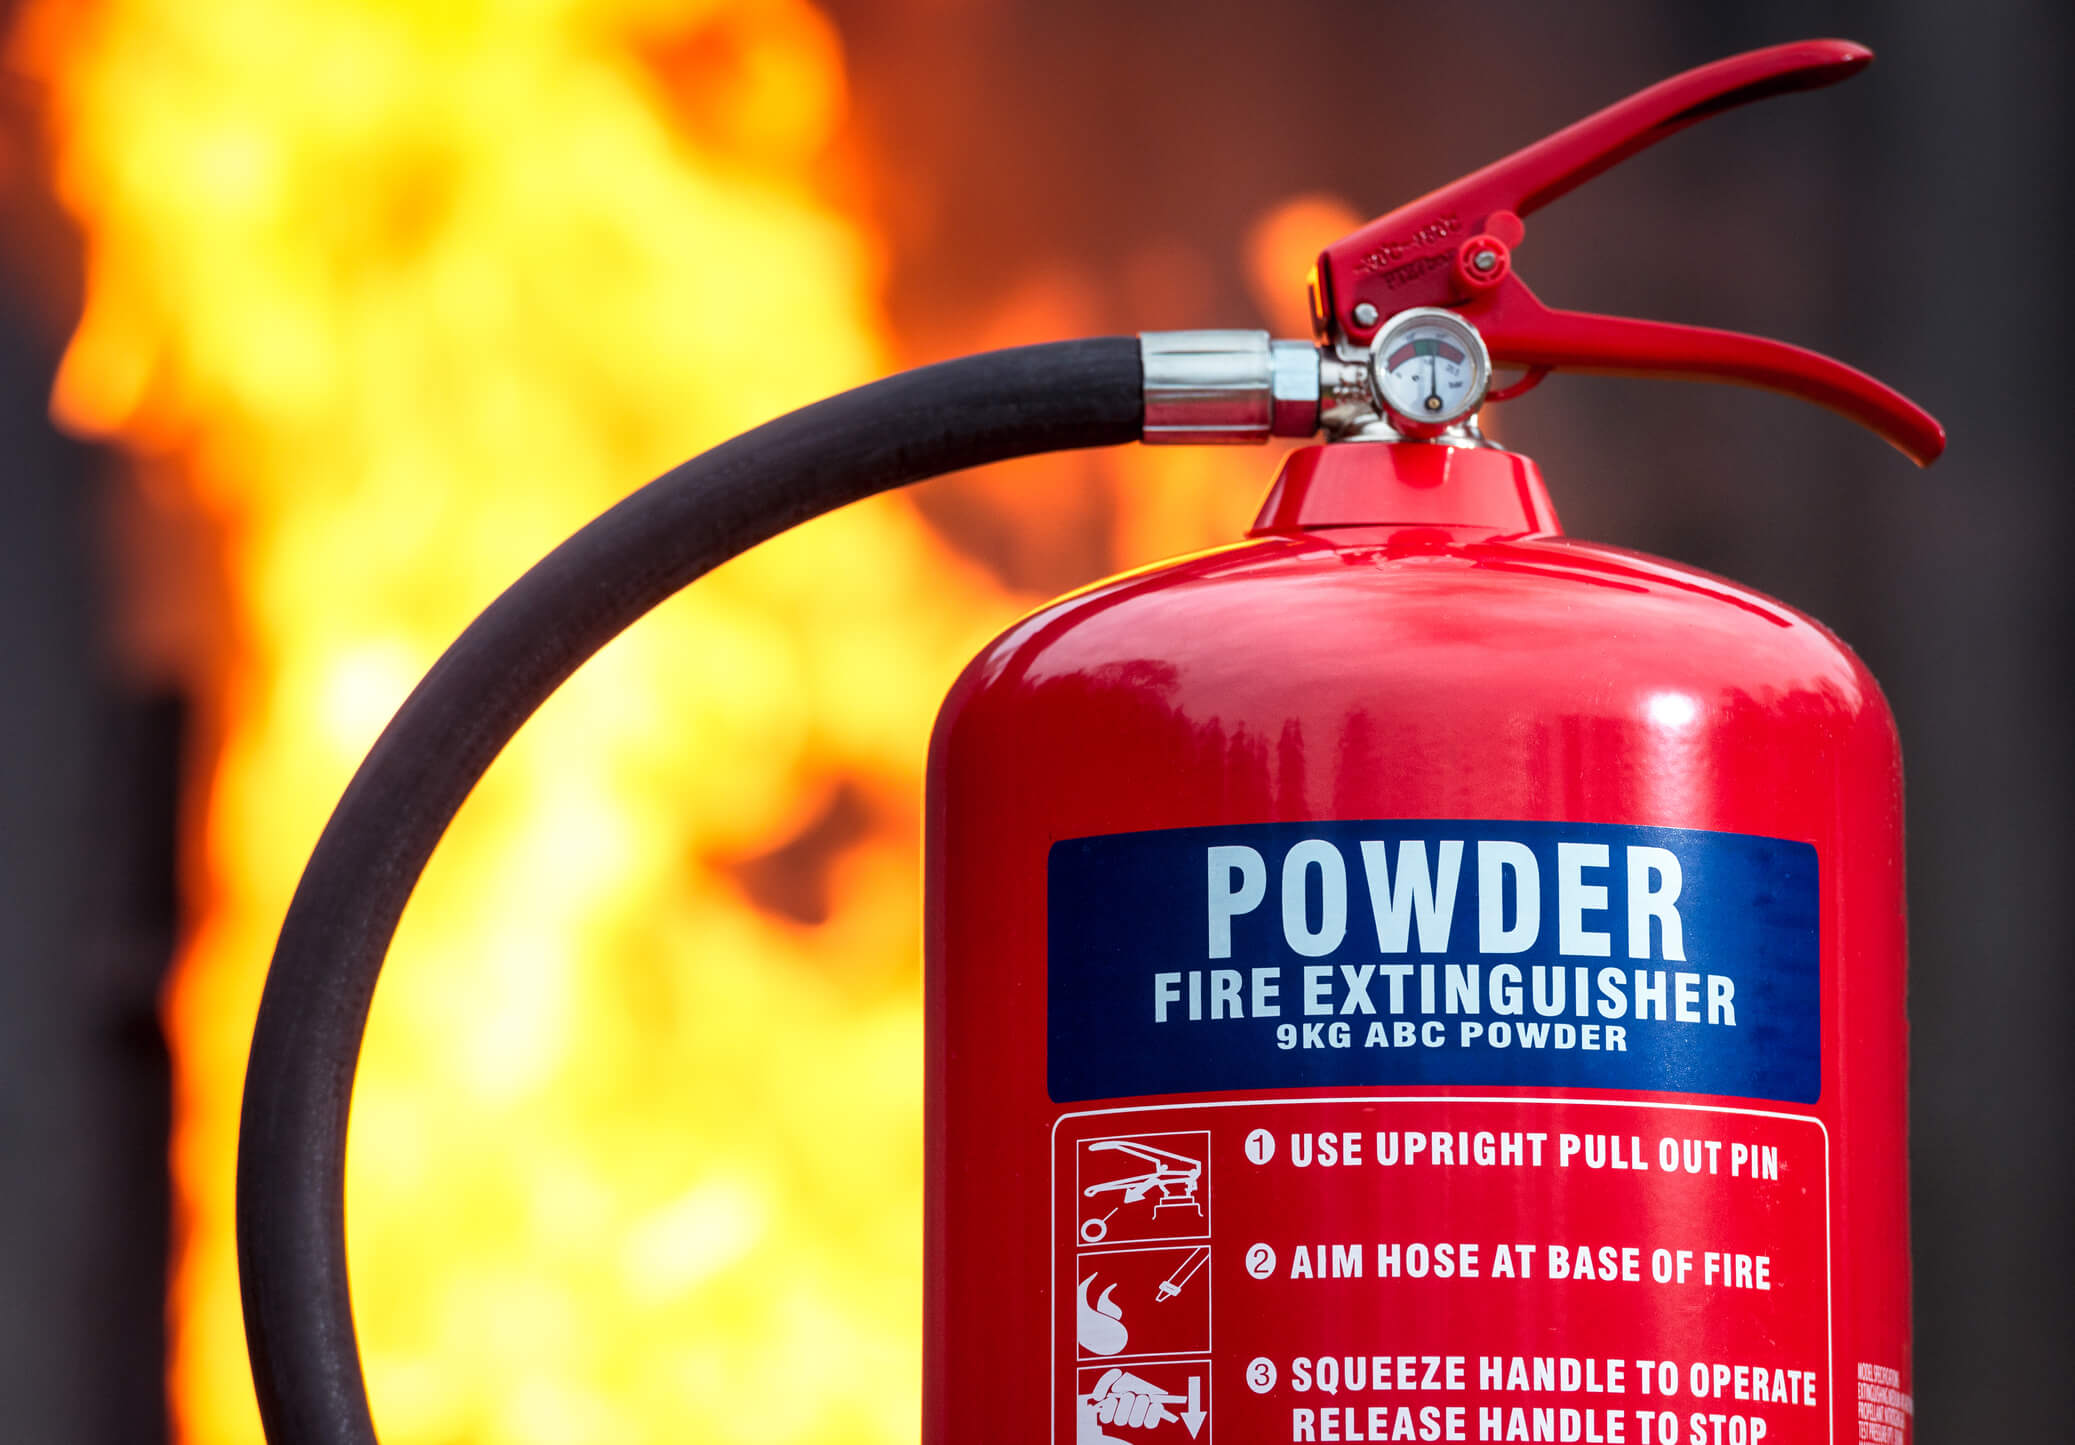 How to Use a Dry Powder Fire Extinguisher